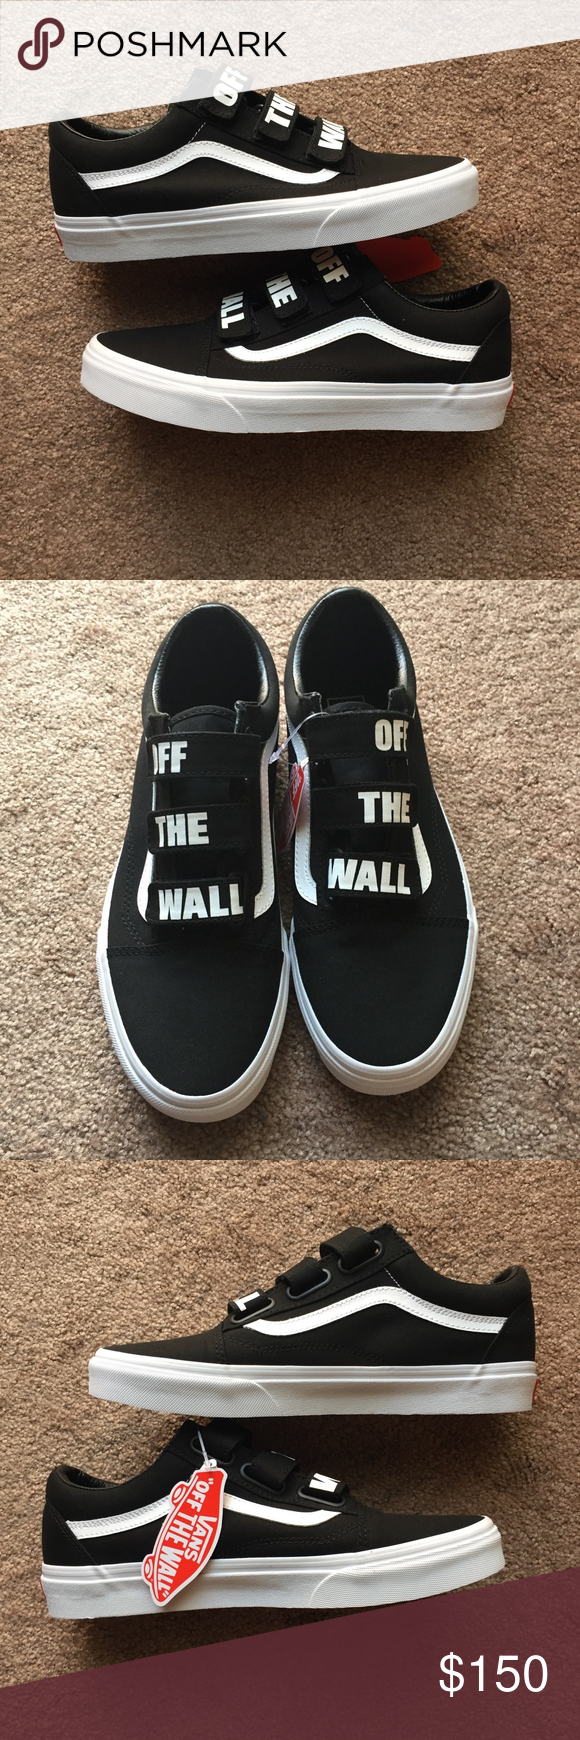 Vans Off The Wall Old Skool V Skate Shoes Sz 9 NEW Brand new